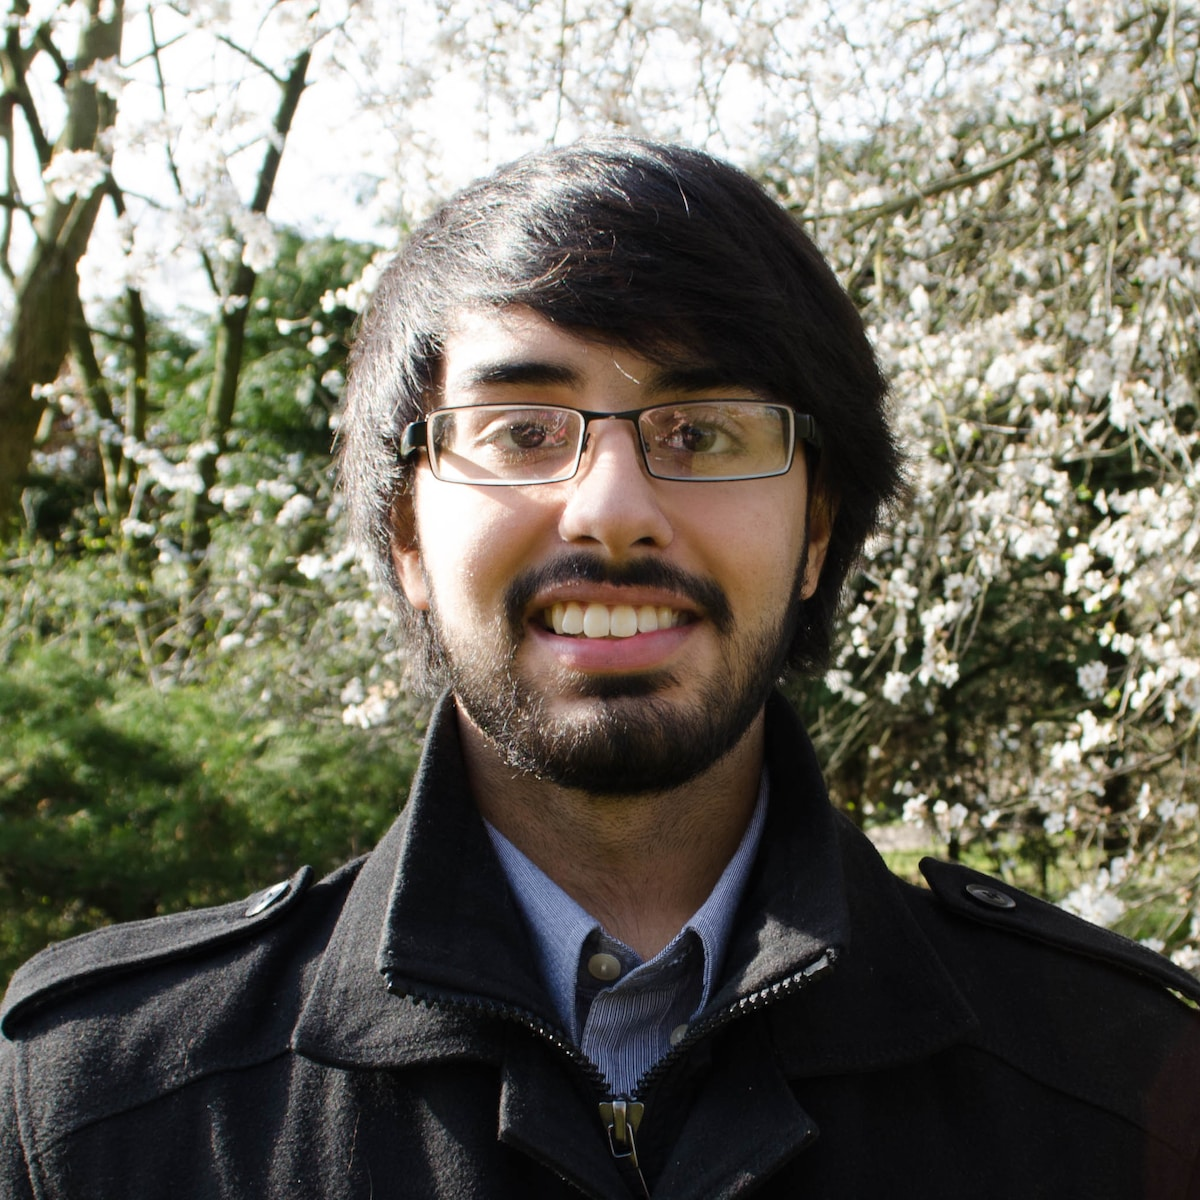 Neel From Lincoln, United Kingdom